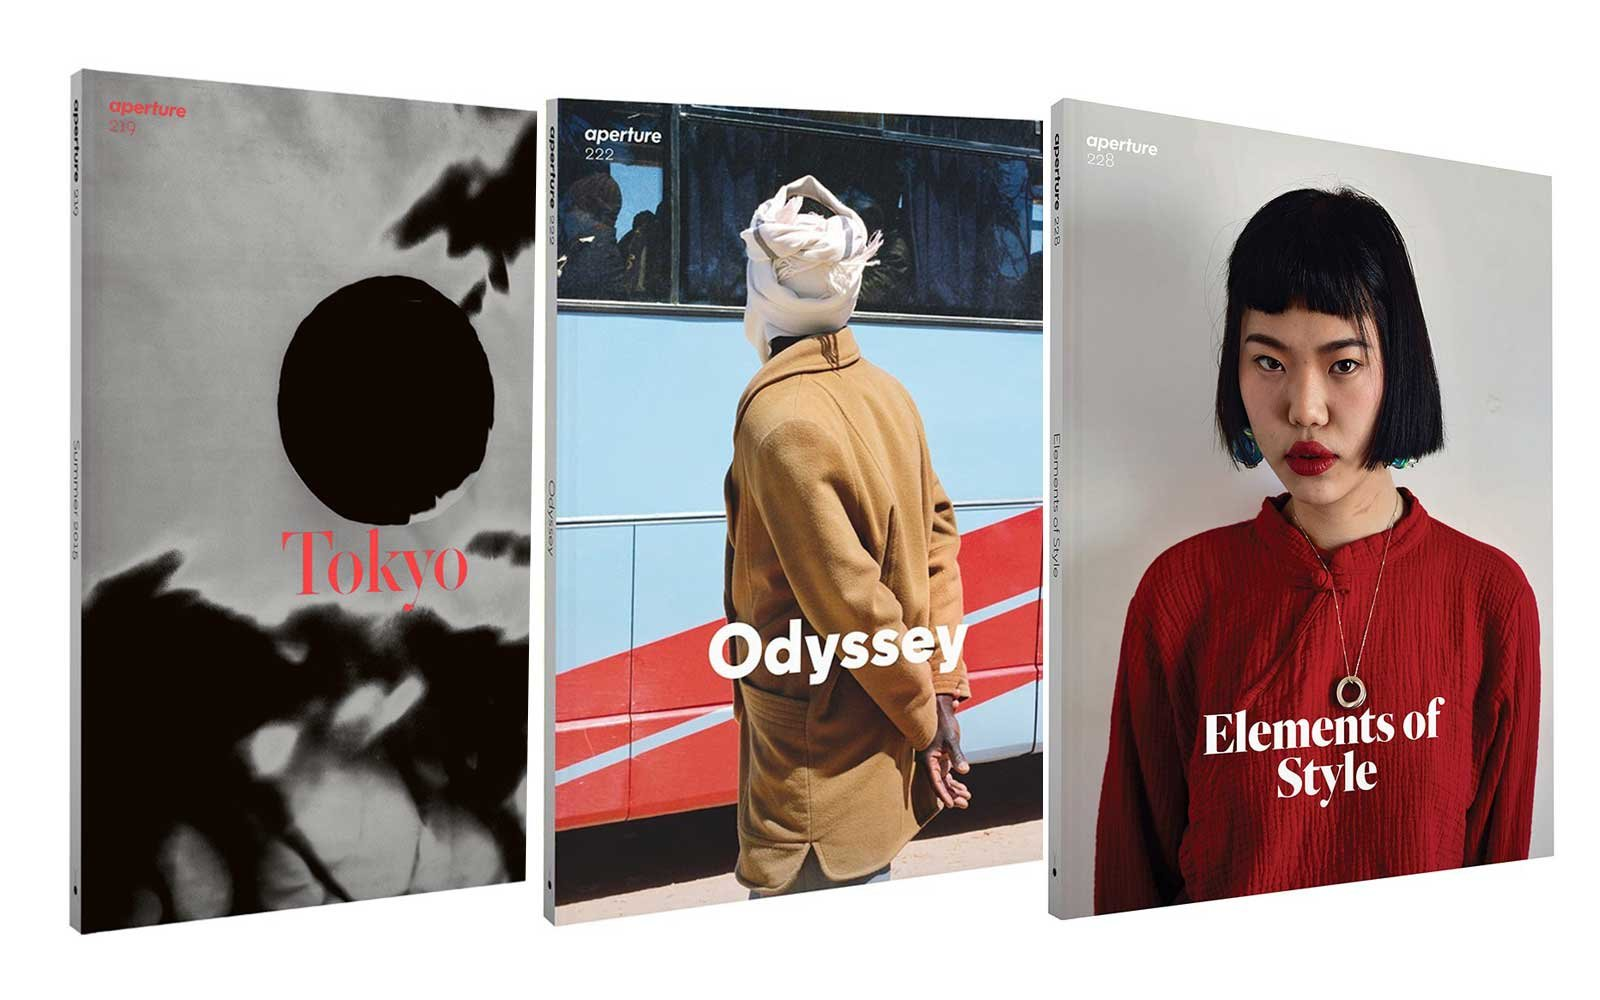 Subscription to Aperture Magazine